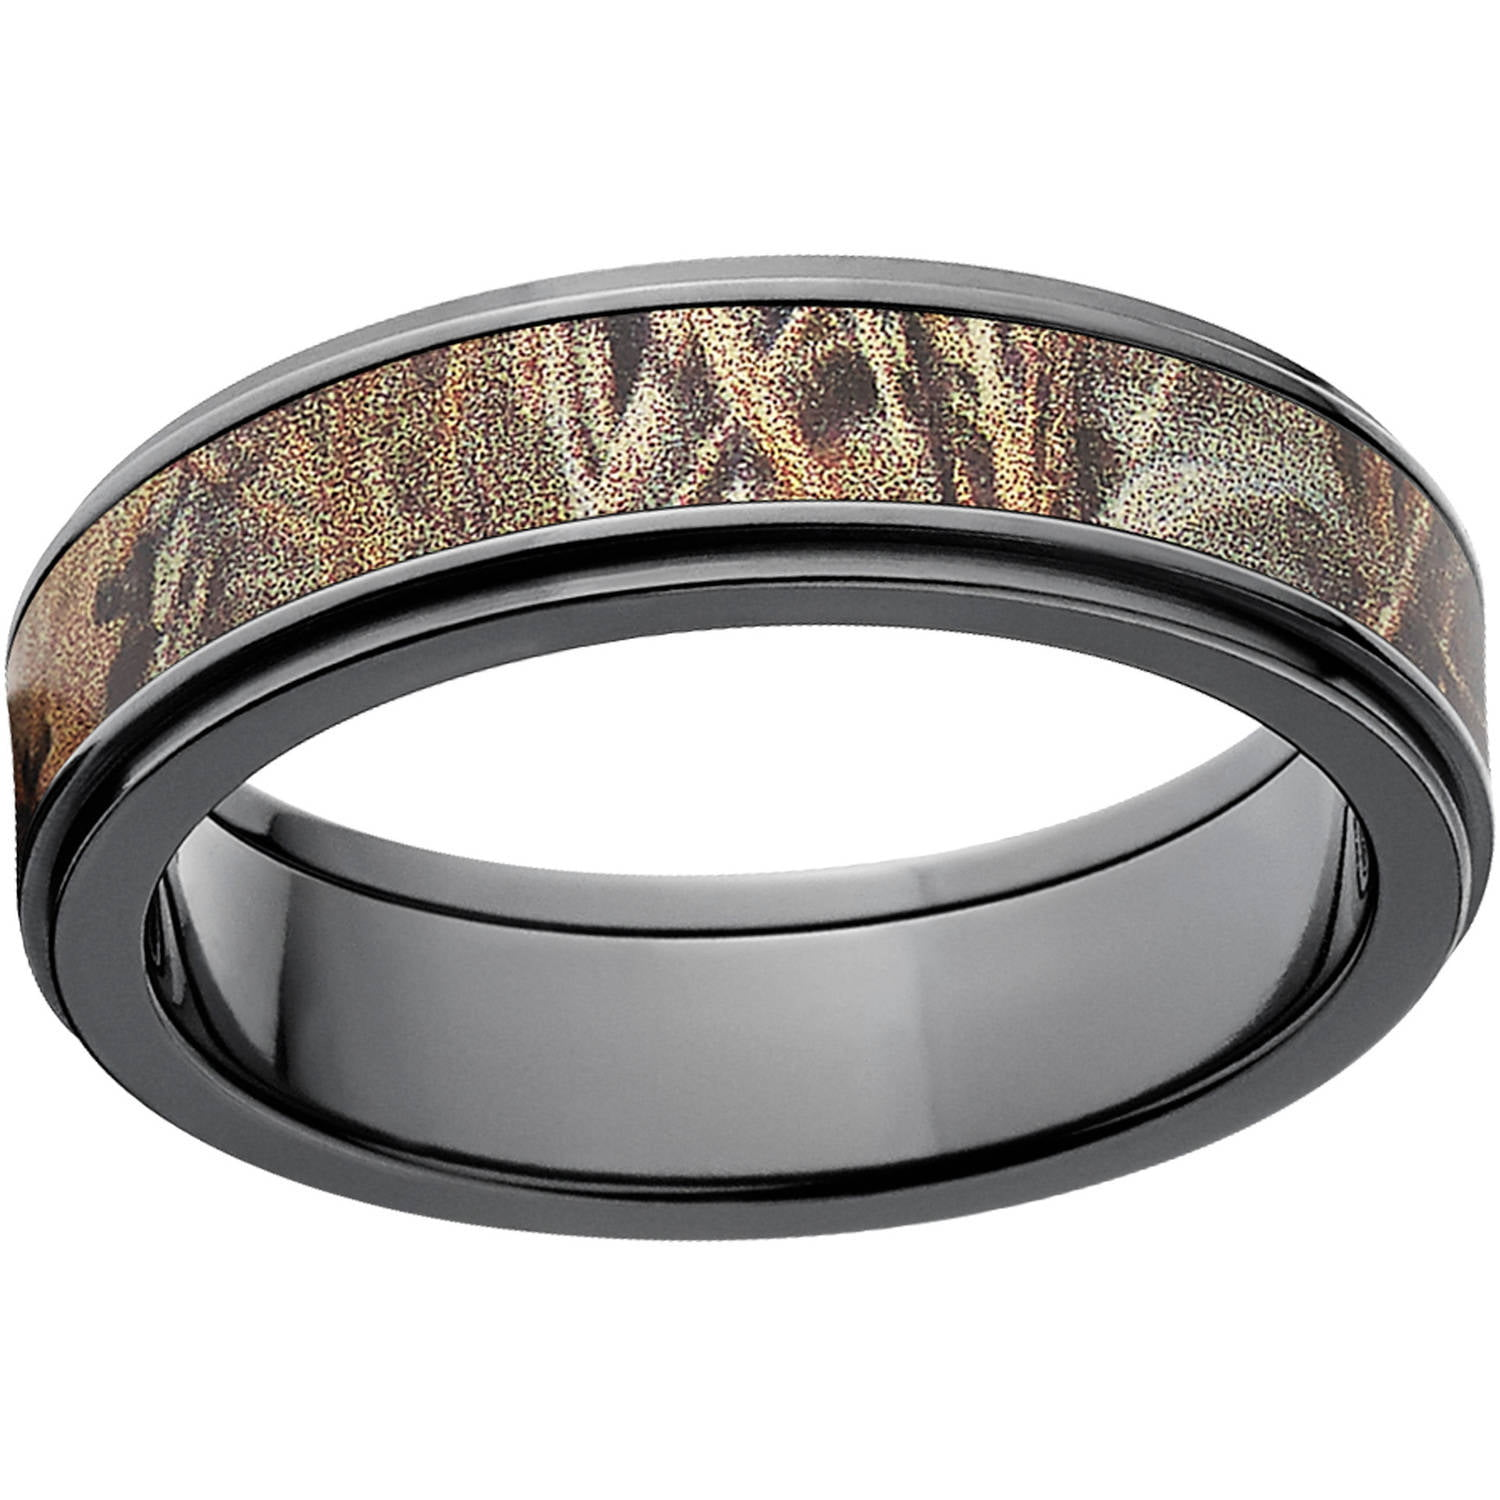 Realtree Max 4 Men s Camo 6mm Black Zirconium Wedding Band with